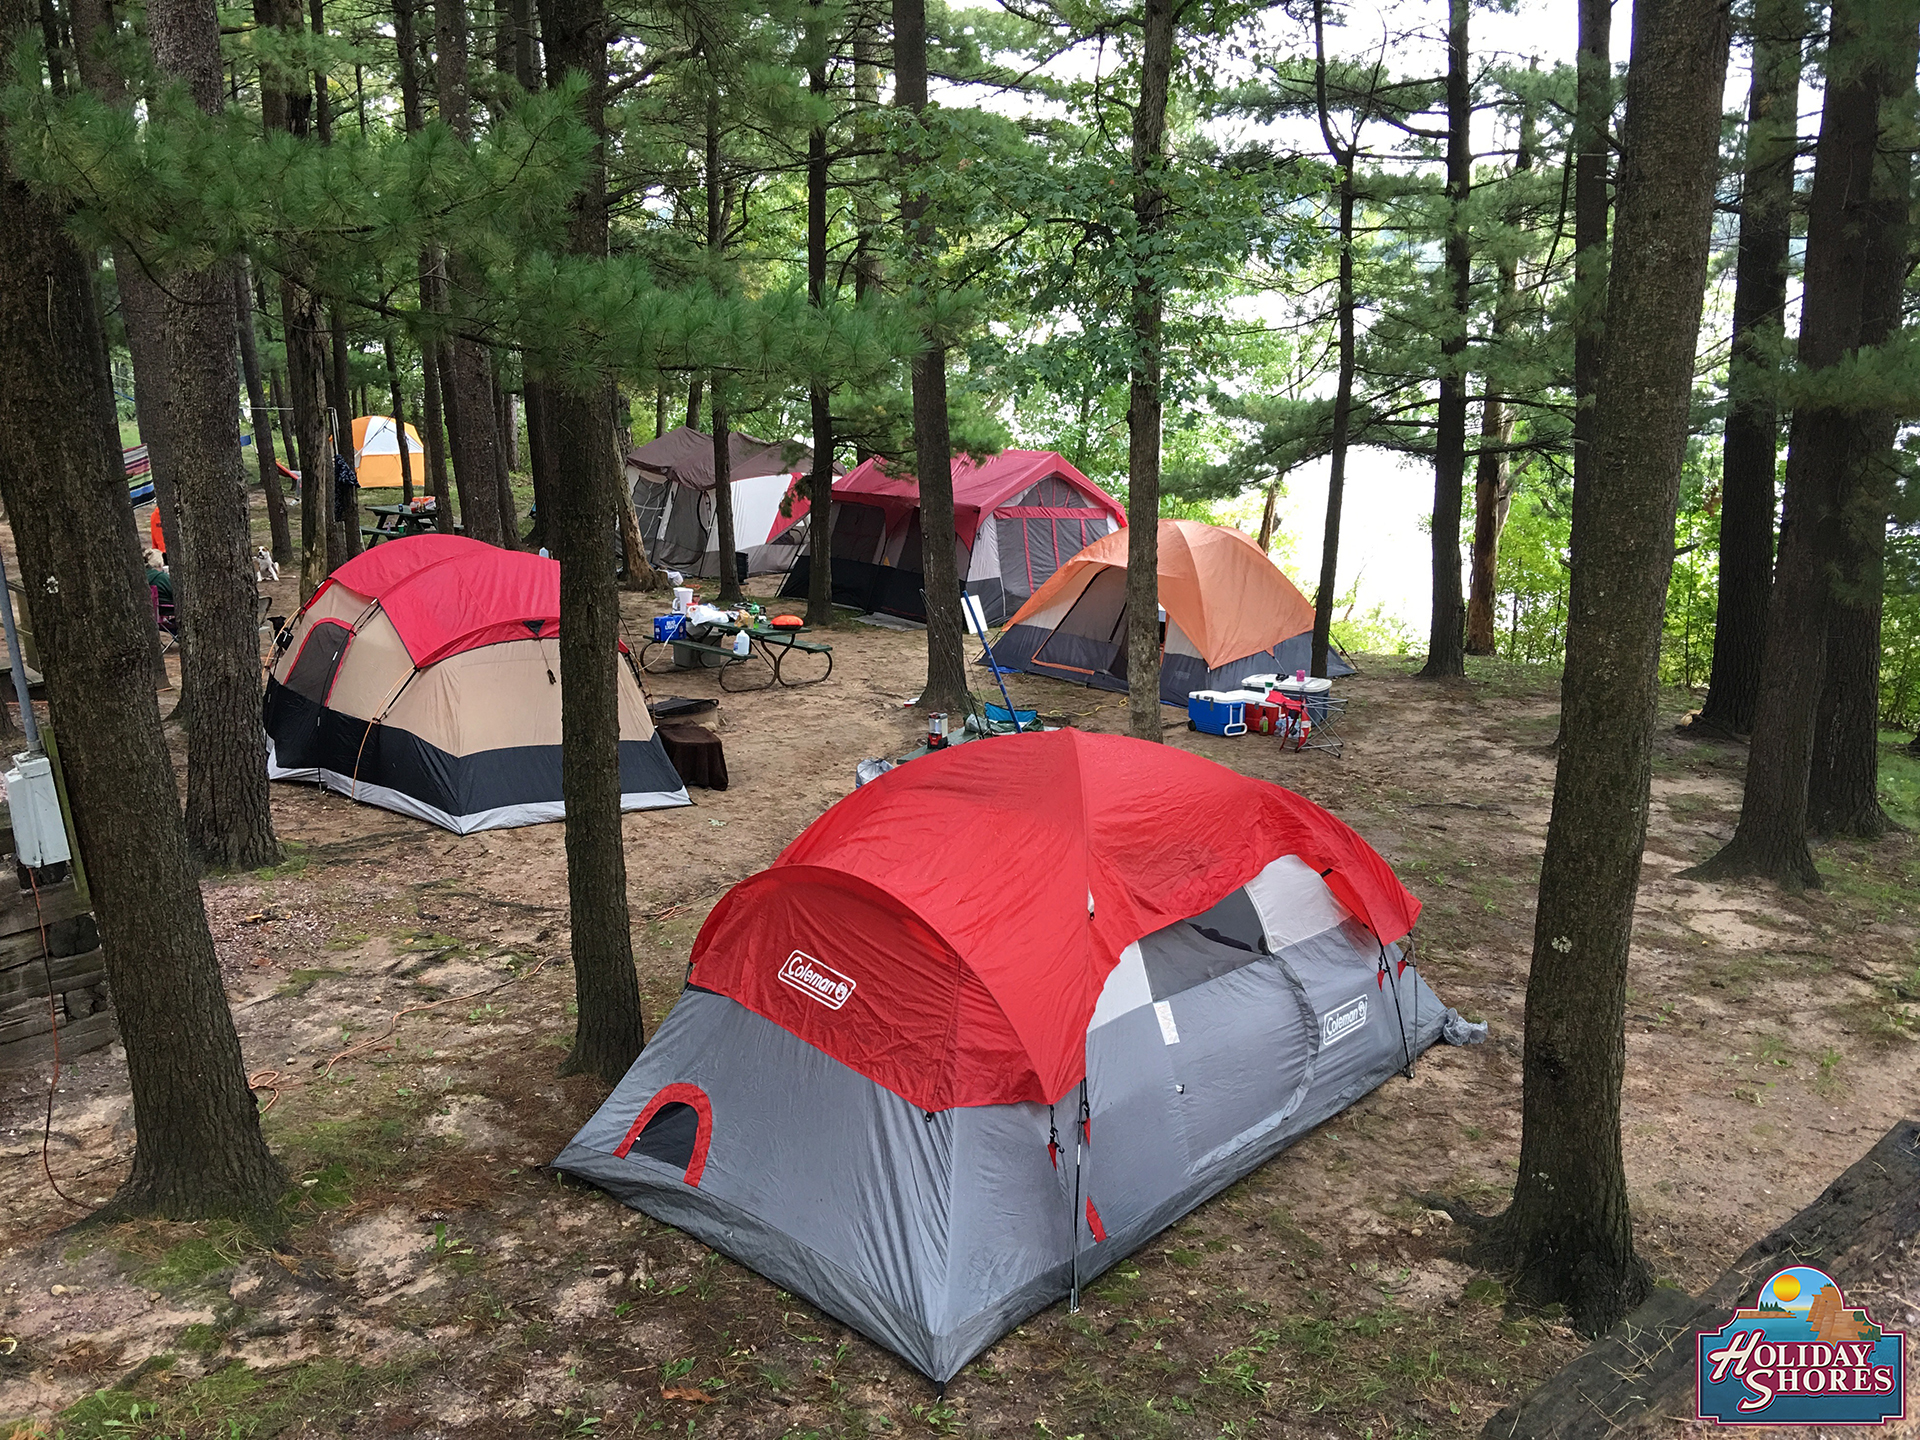 Holiday Shores River Campsite